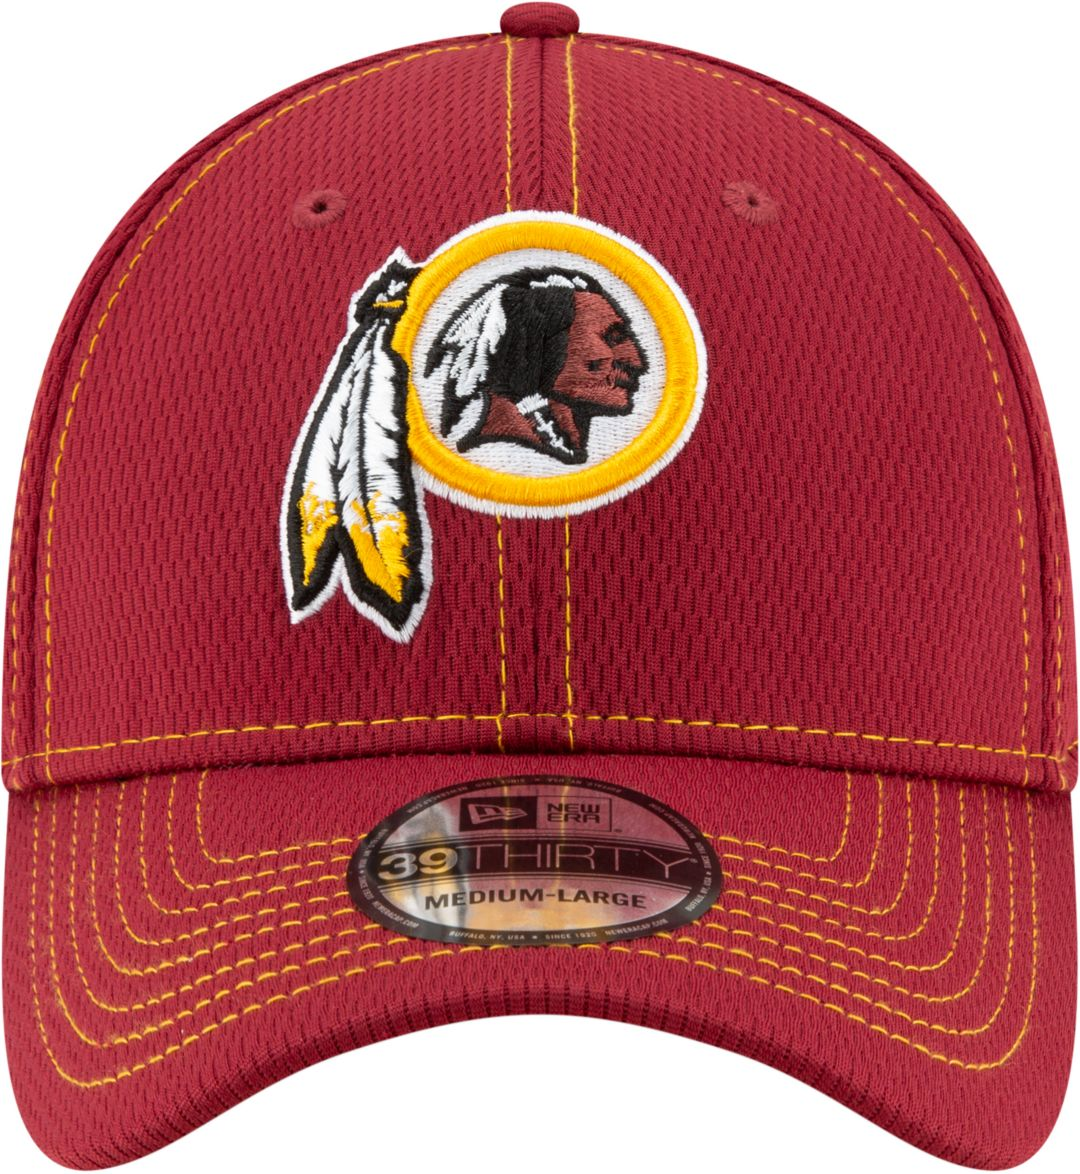 70f5d704 New Era Men's Washington Redskins Sideline Road 39Thirty Stretch Fit Hat